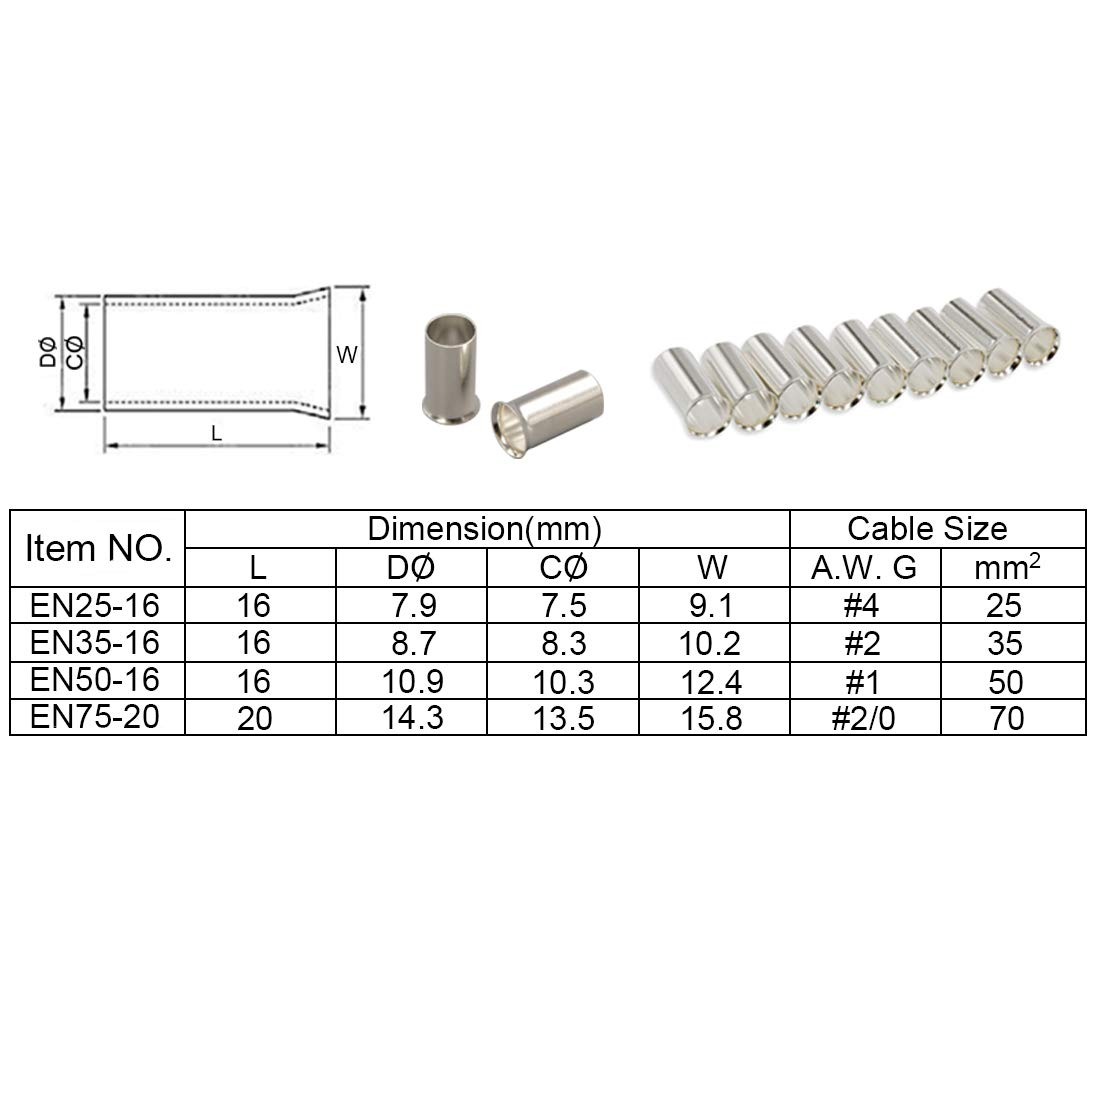 Gold 18-16 AWG 0.205 inch Female Disconnect Parts Express